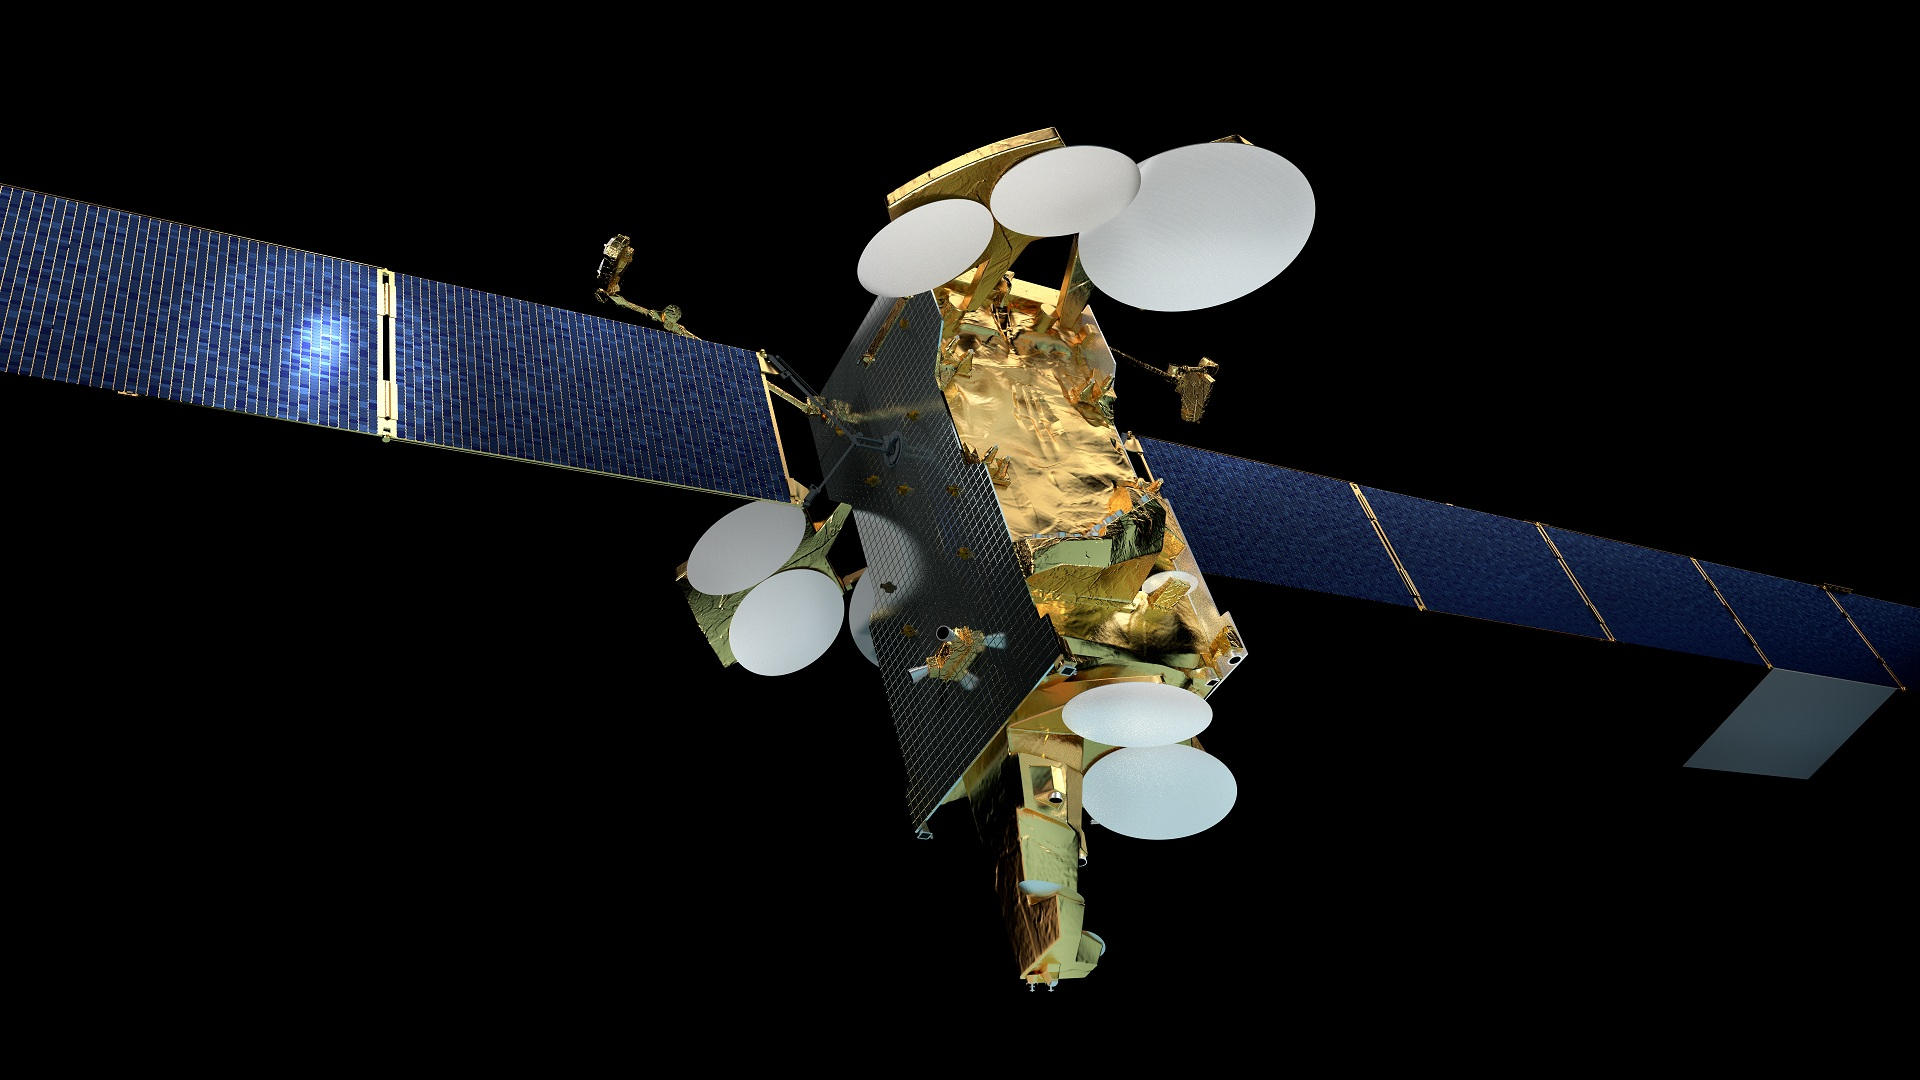 research articles in satellite communication devices